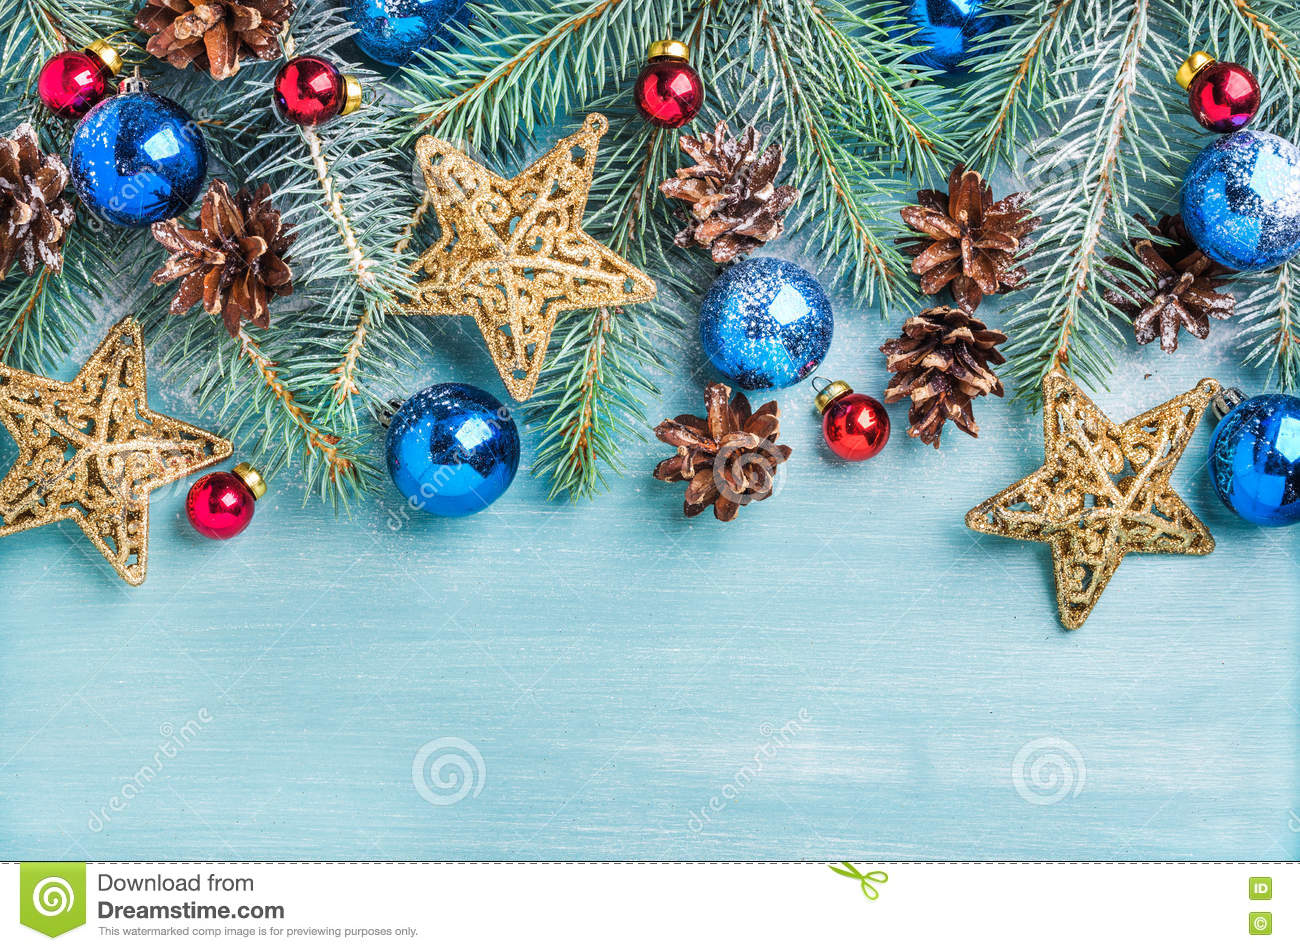 New Year or Christmas background: fir branches, colorful glass balls, cones and golden stars over blue painted wooden